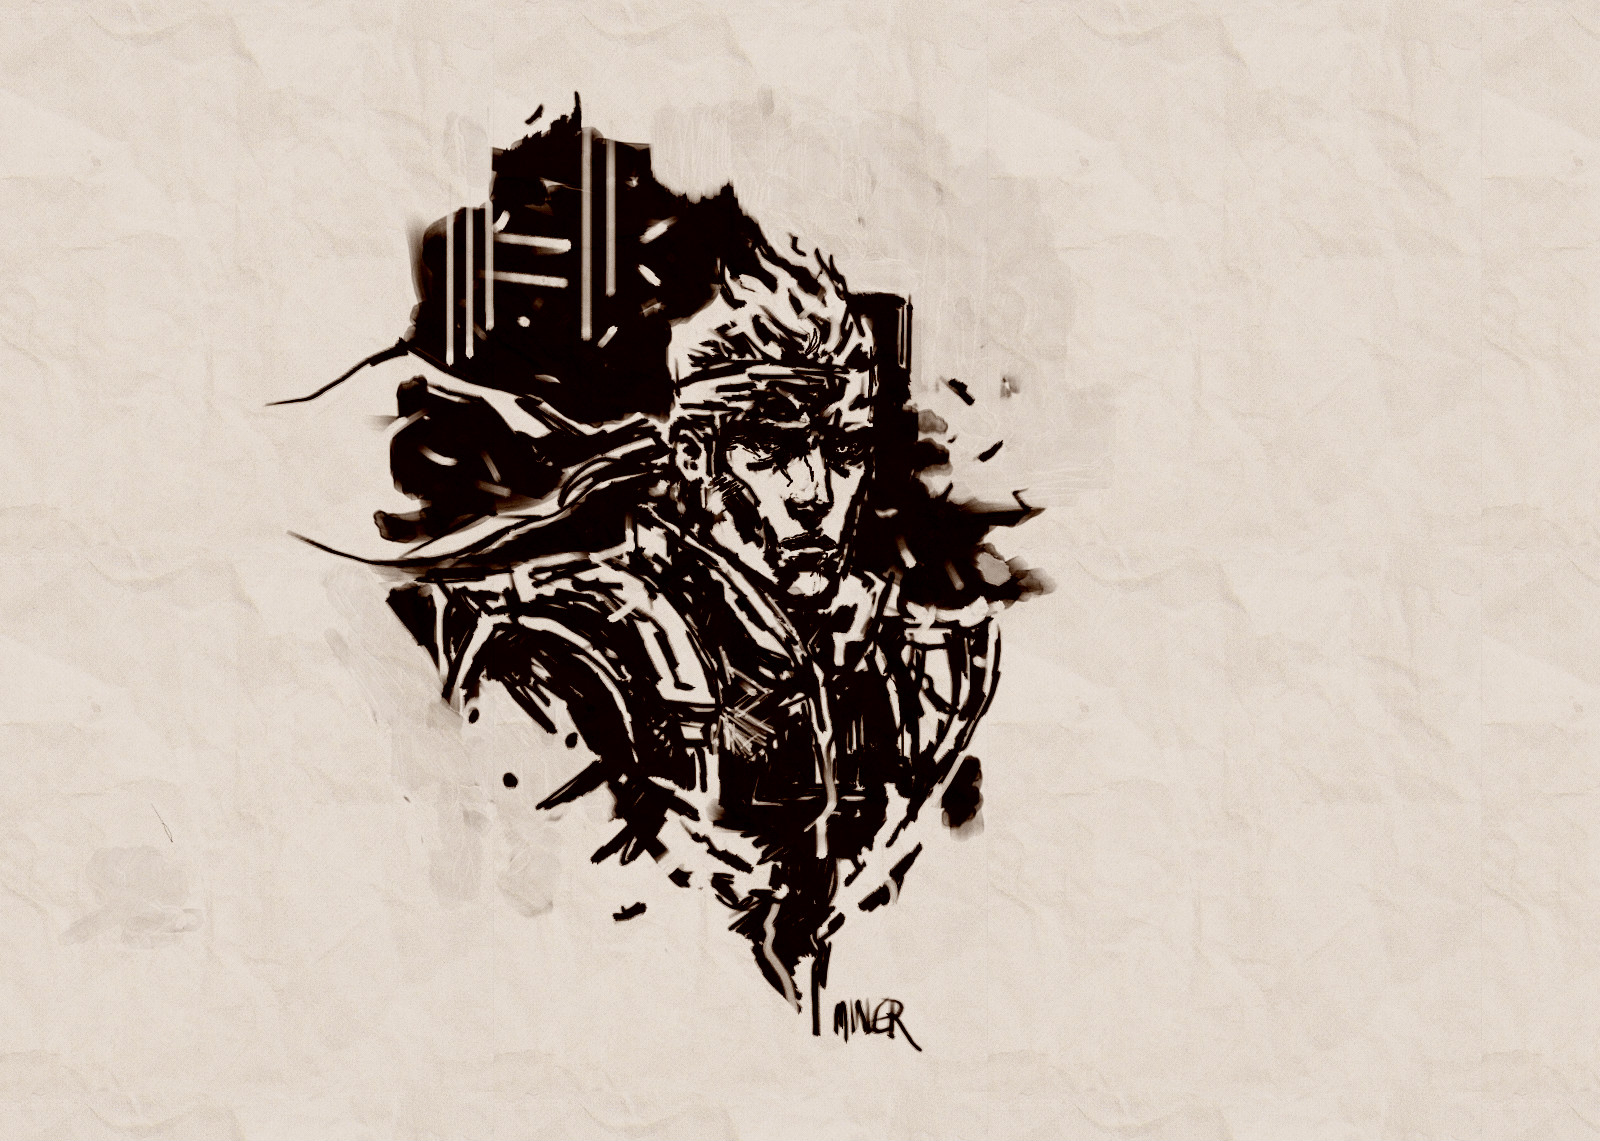 metal gear solid 2 sons of liberty wikipedia la tattoo design bild. Black Bedroom Furniture Sets. Home Design Ideas